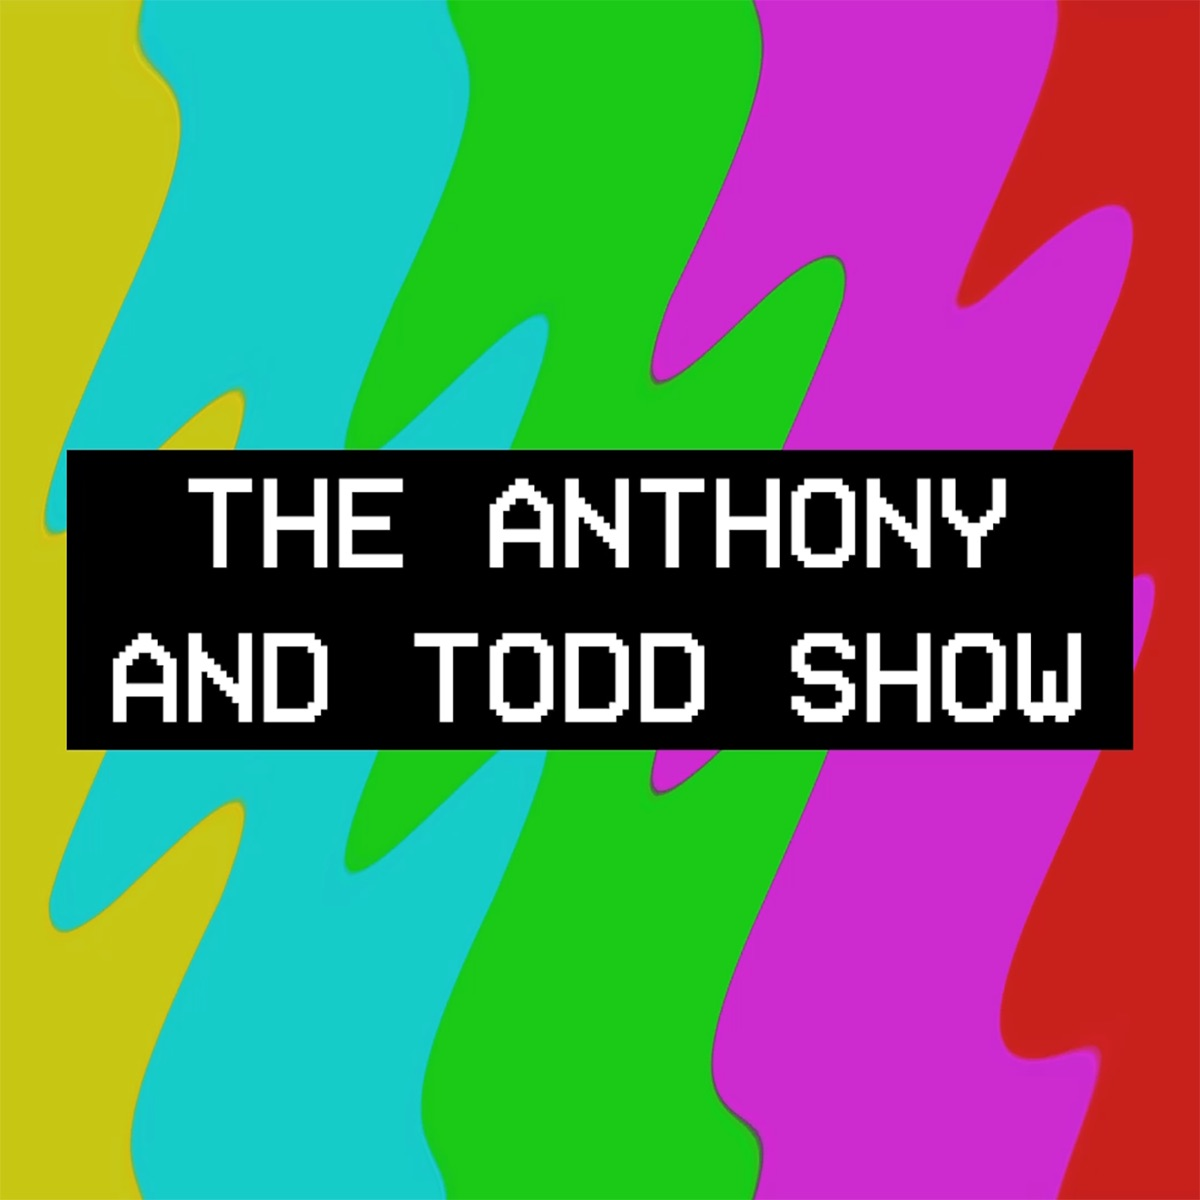 The Anthony & Todd Show